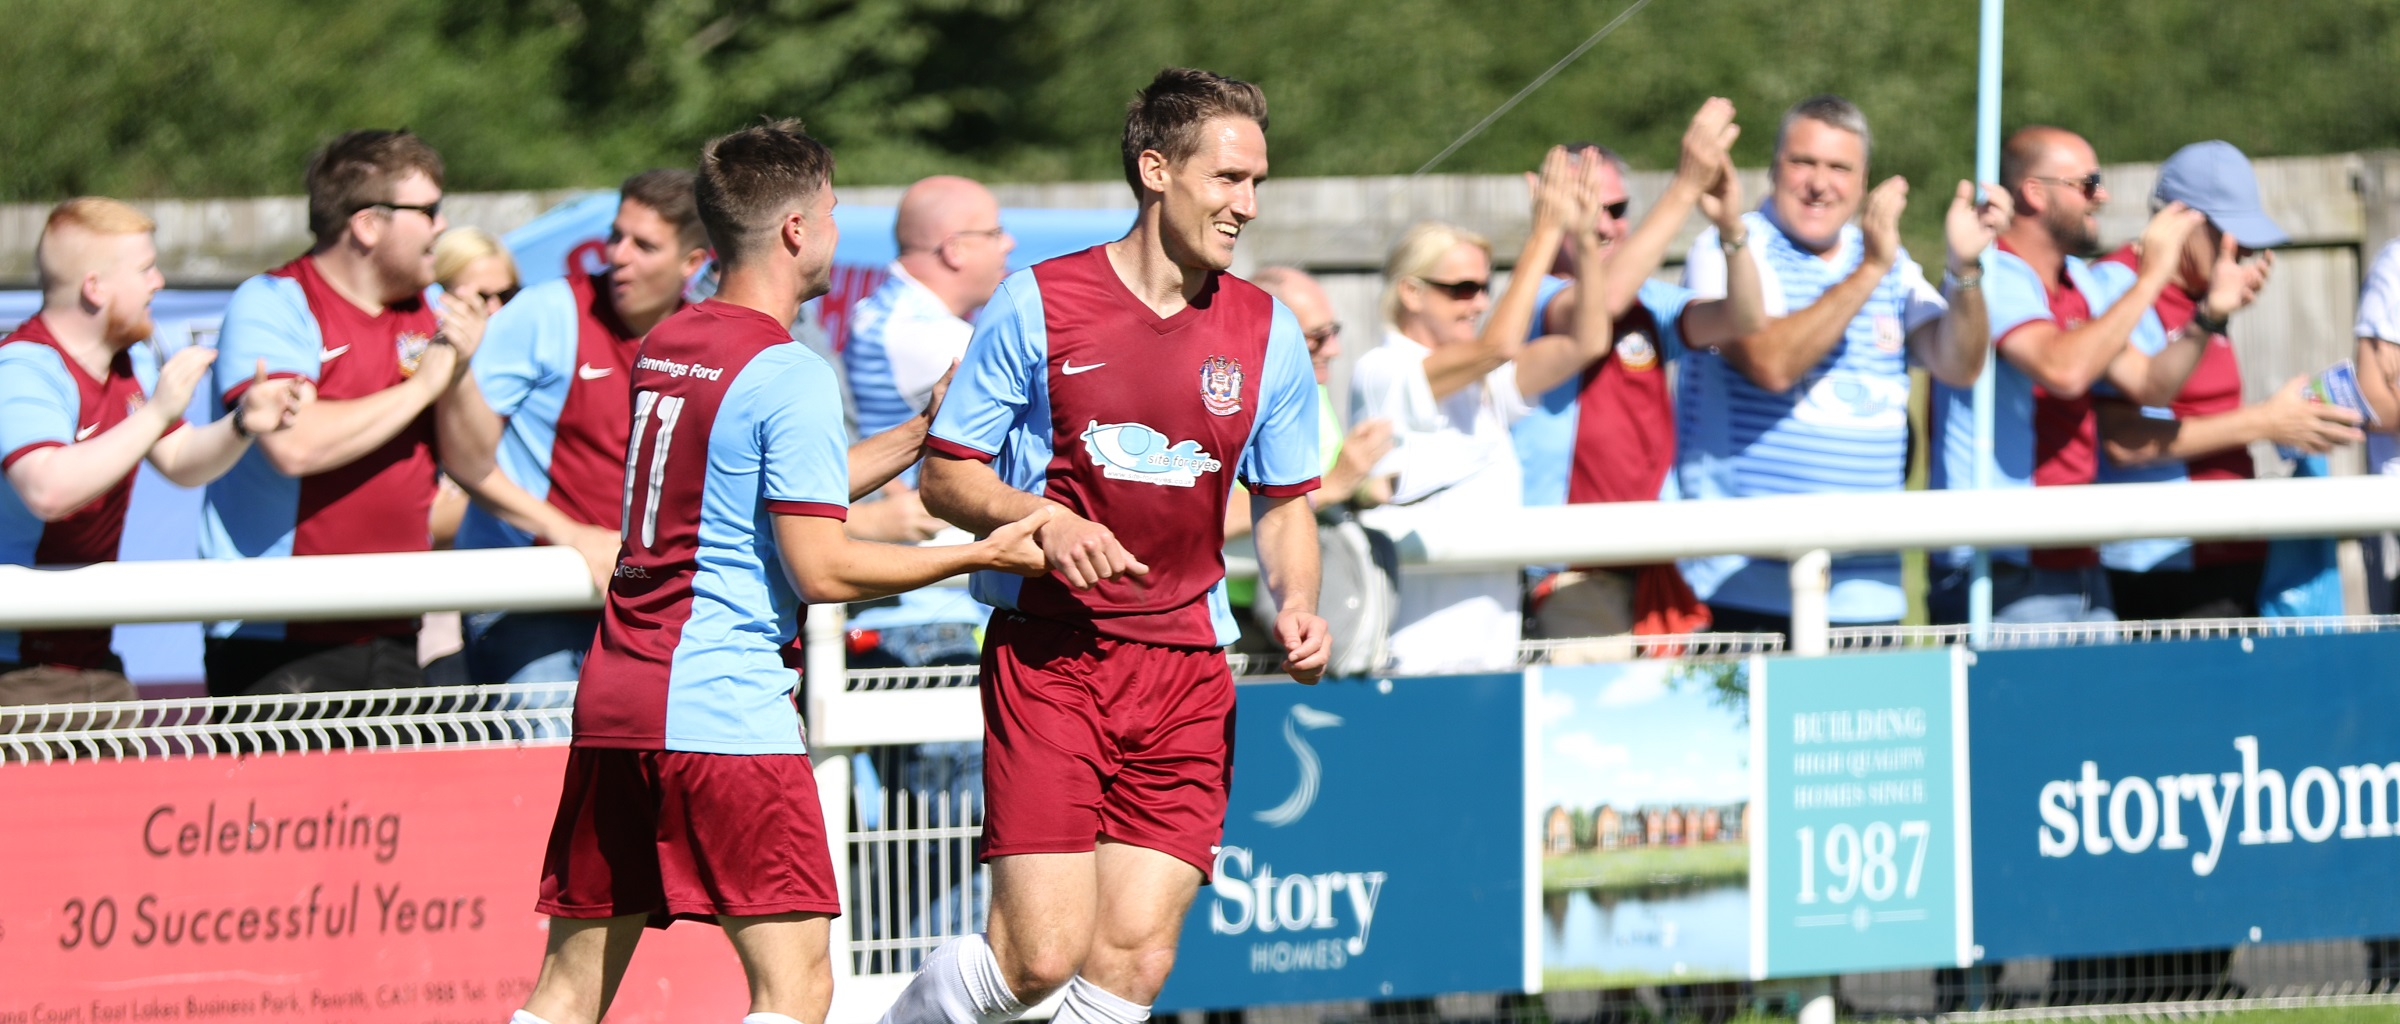 Penrith 0-2 South Shields: Carson and Shaw secure win